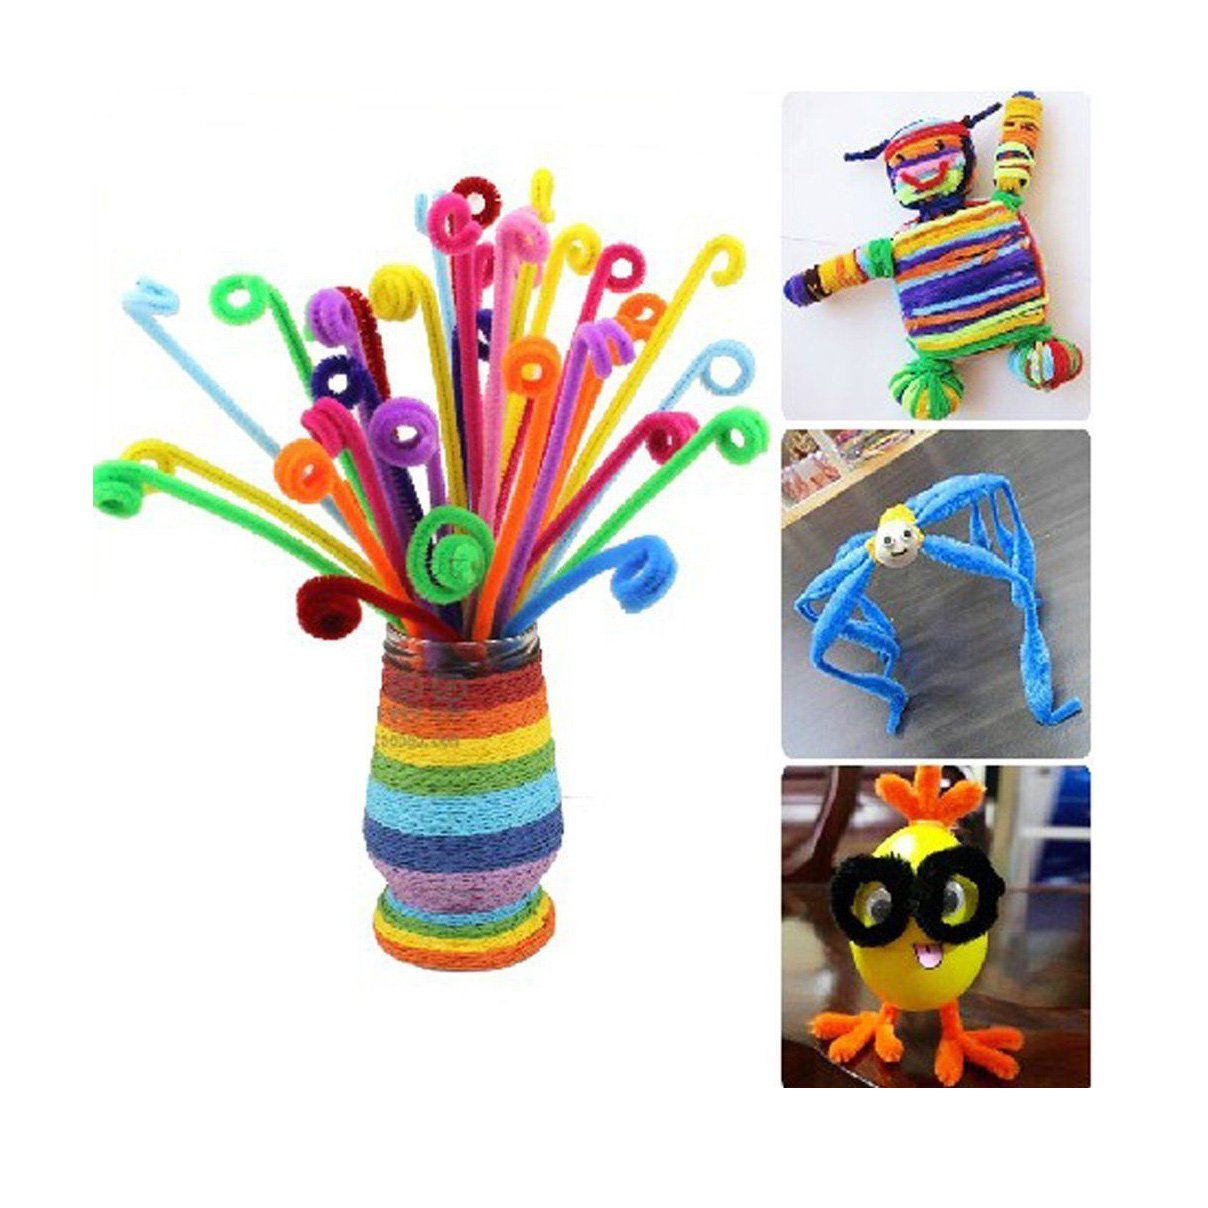 Saim Rose Red Colored Pipe Cleaners Chenille Stems 12 for Creative Handmade Arts and Crafts 500 PCS G1ZW0171115